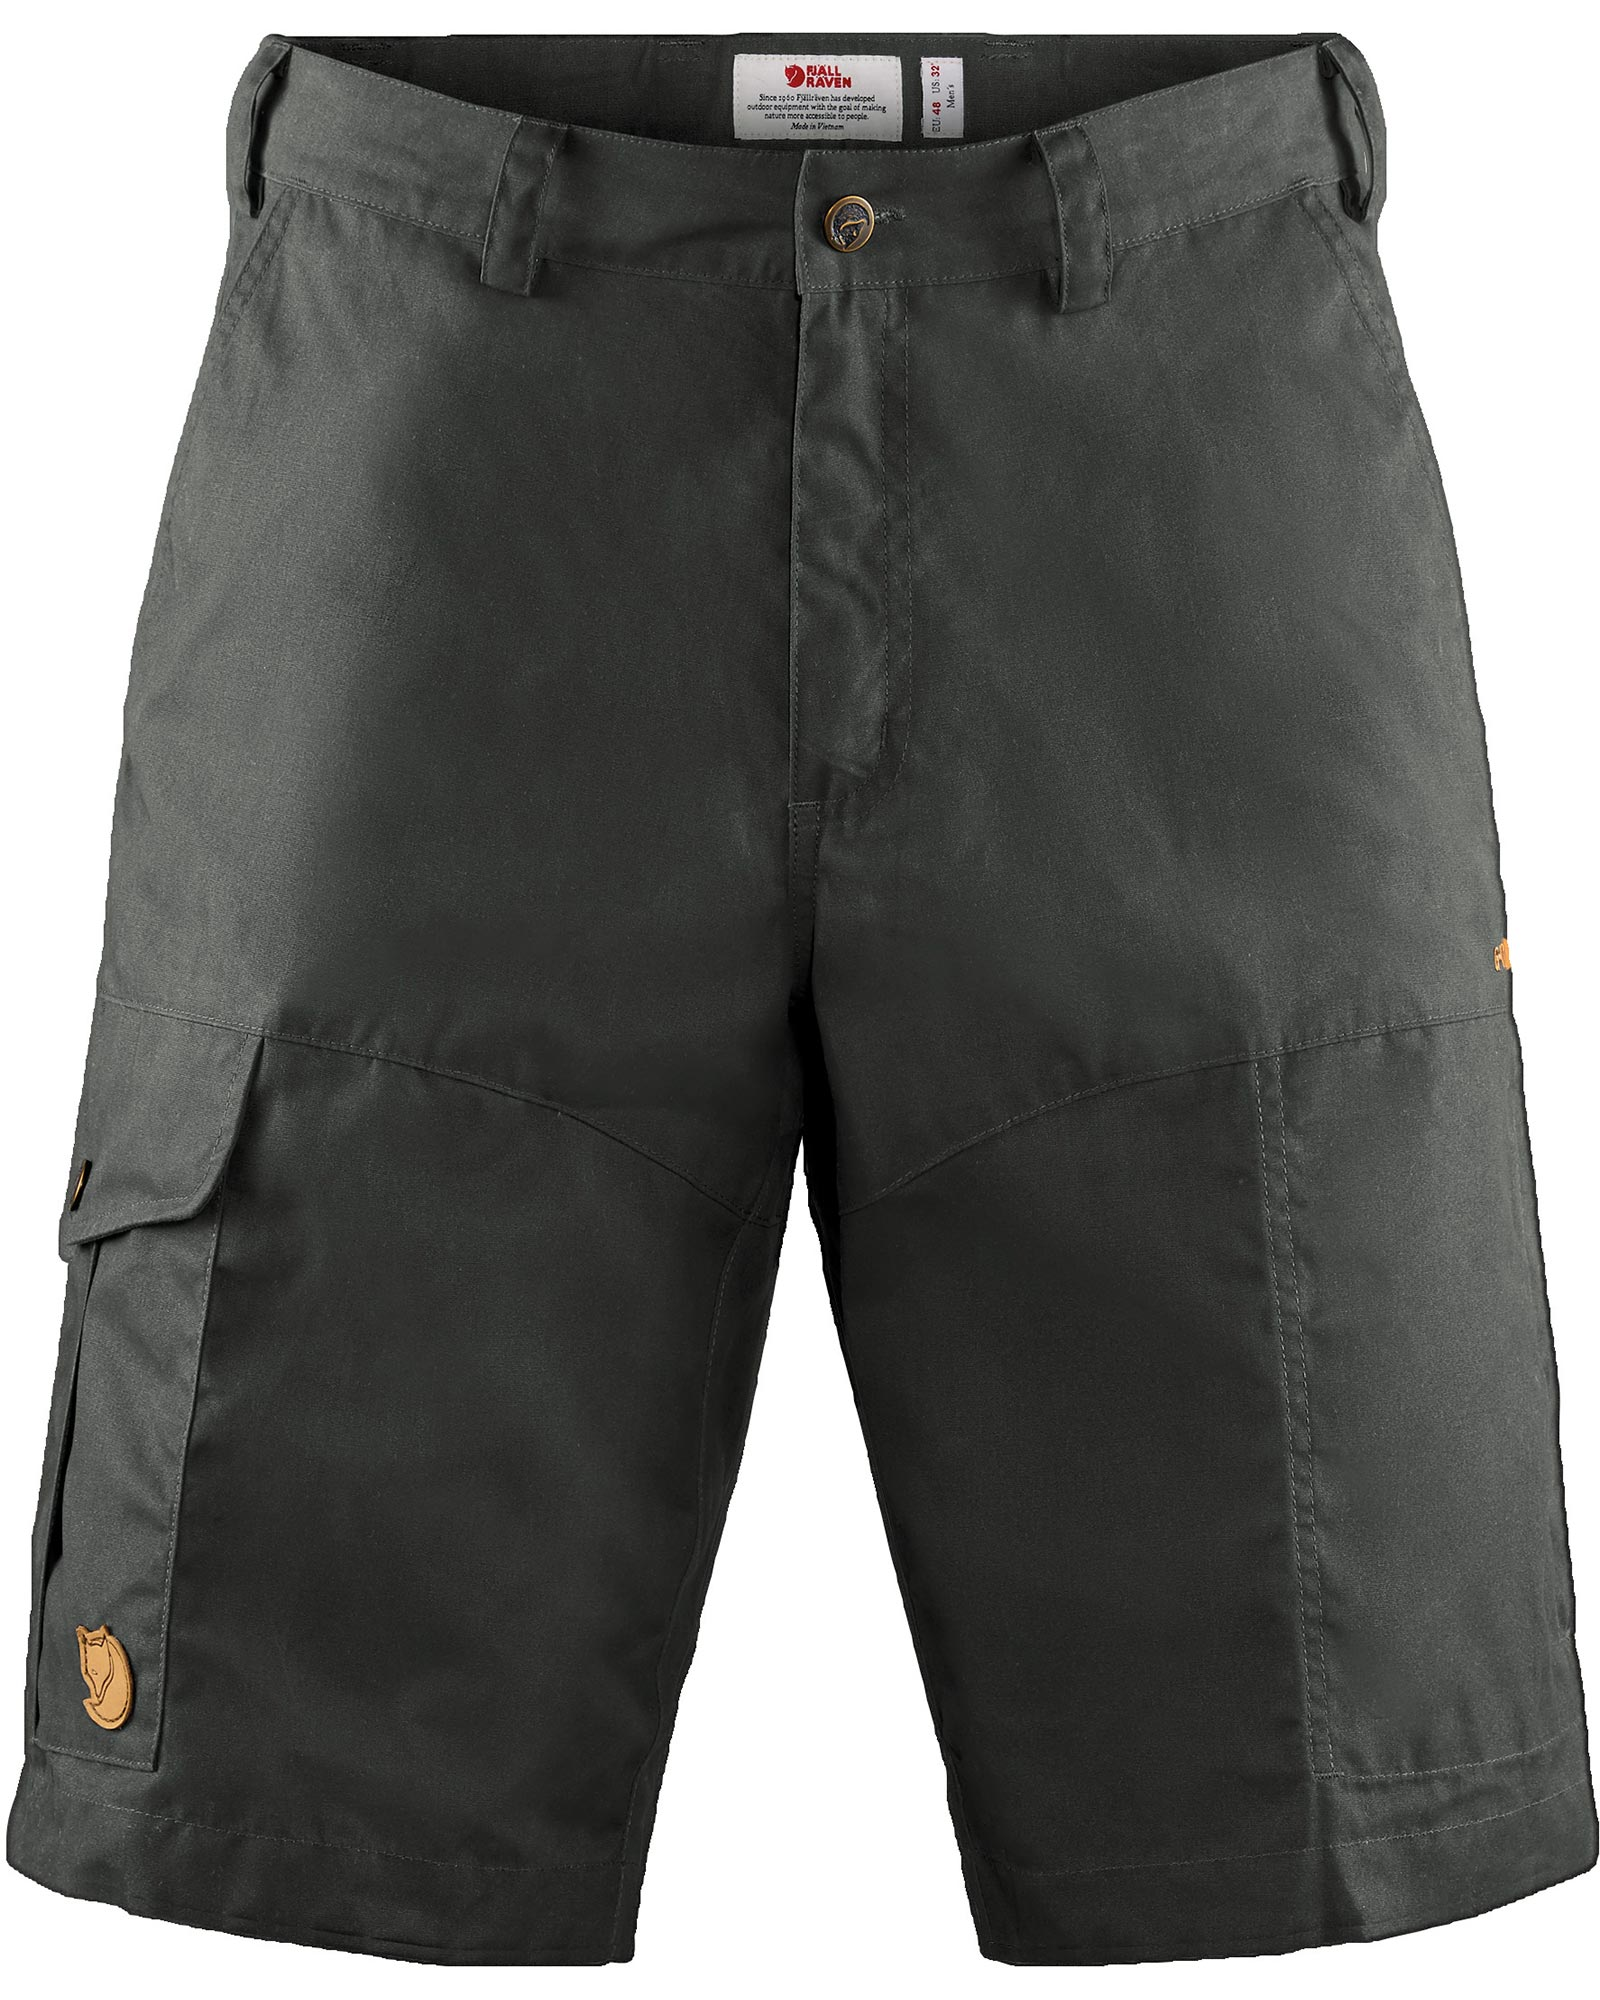 Fjallraven Men's Karl Pro G-1000 Silent Eco Shorts 0